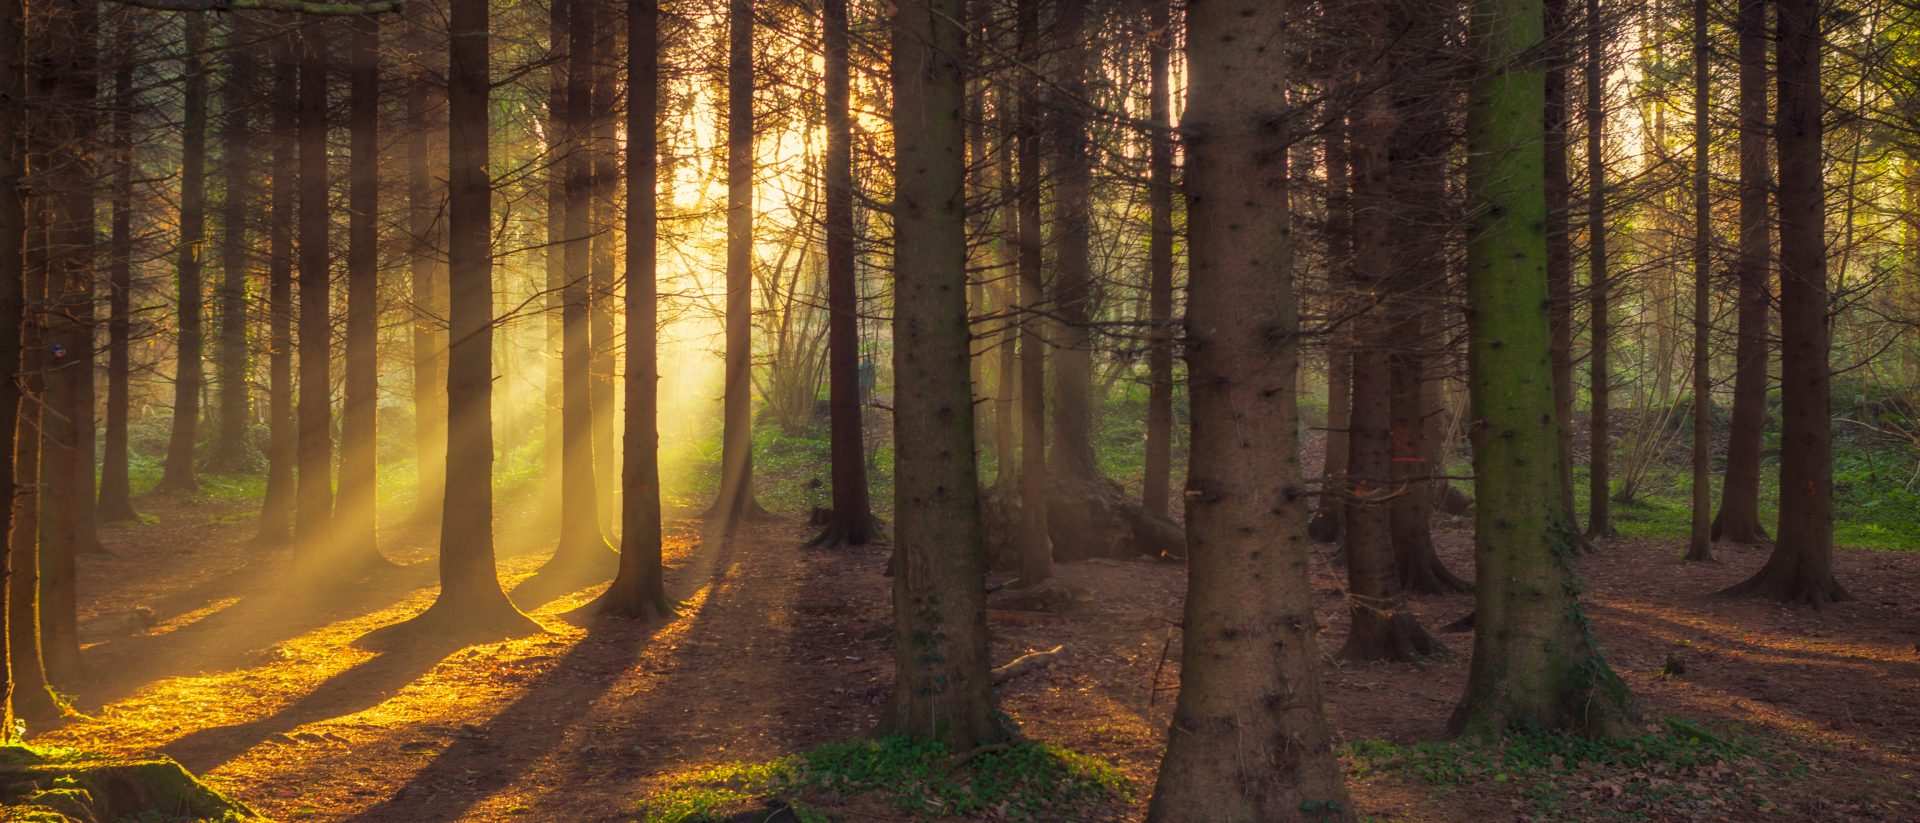 forest morning sun rising in the UK